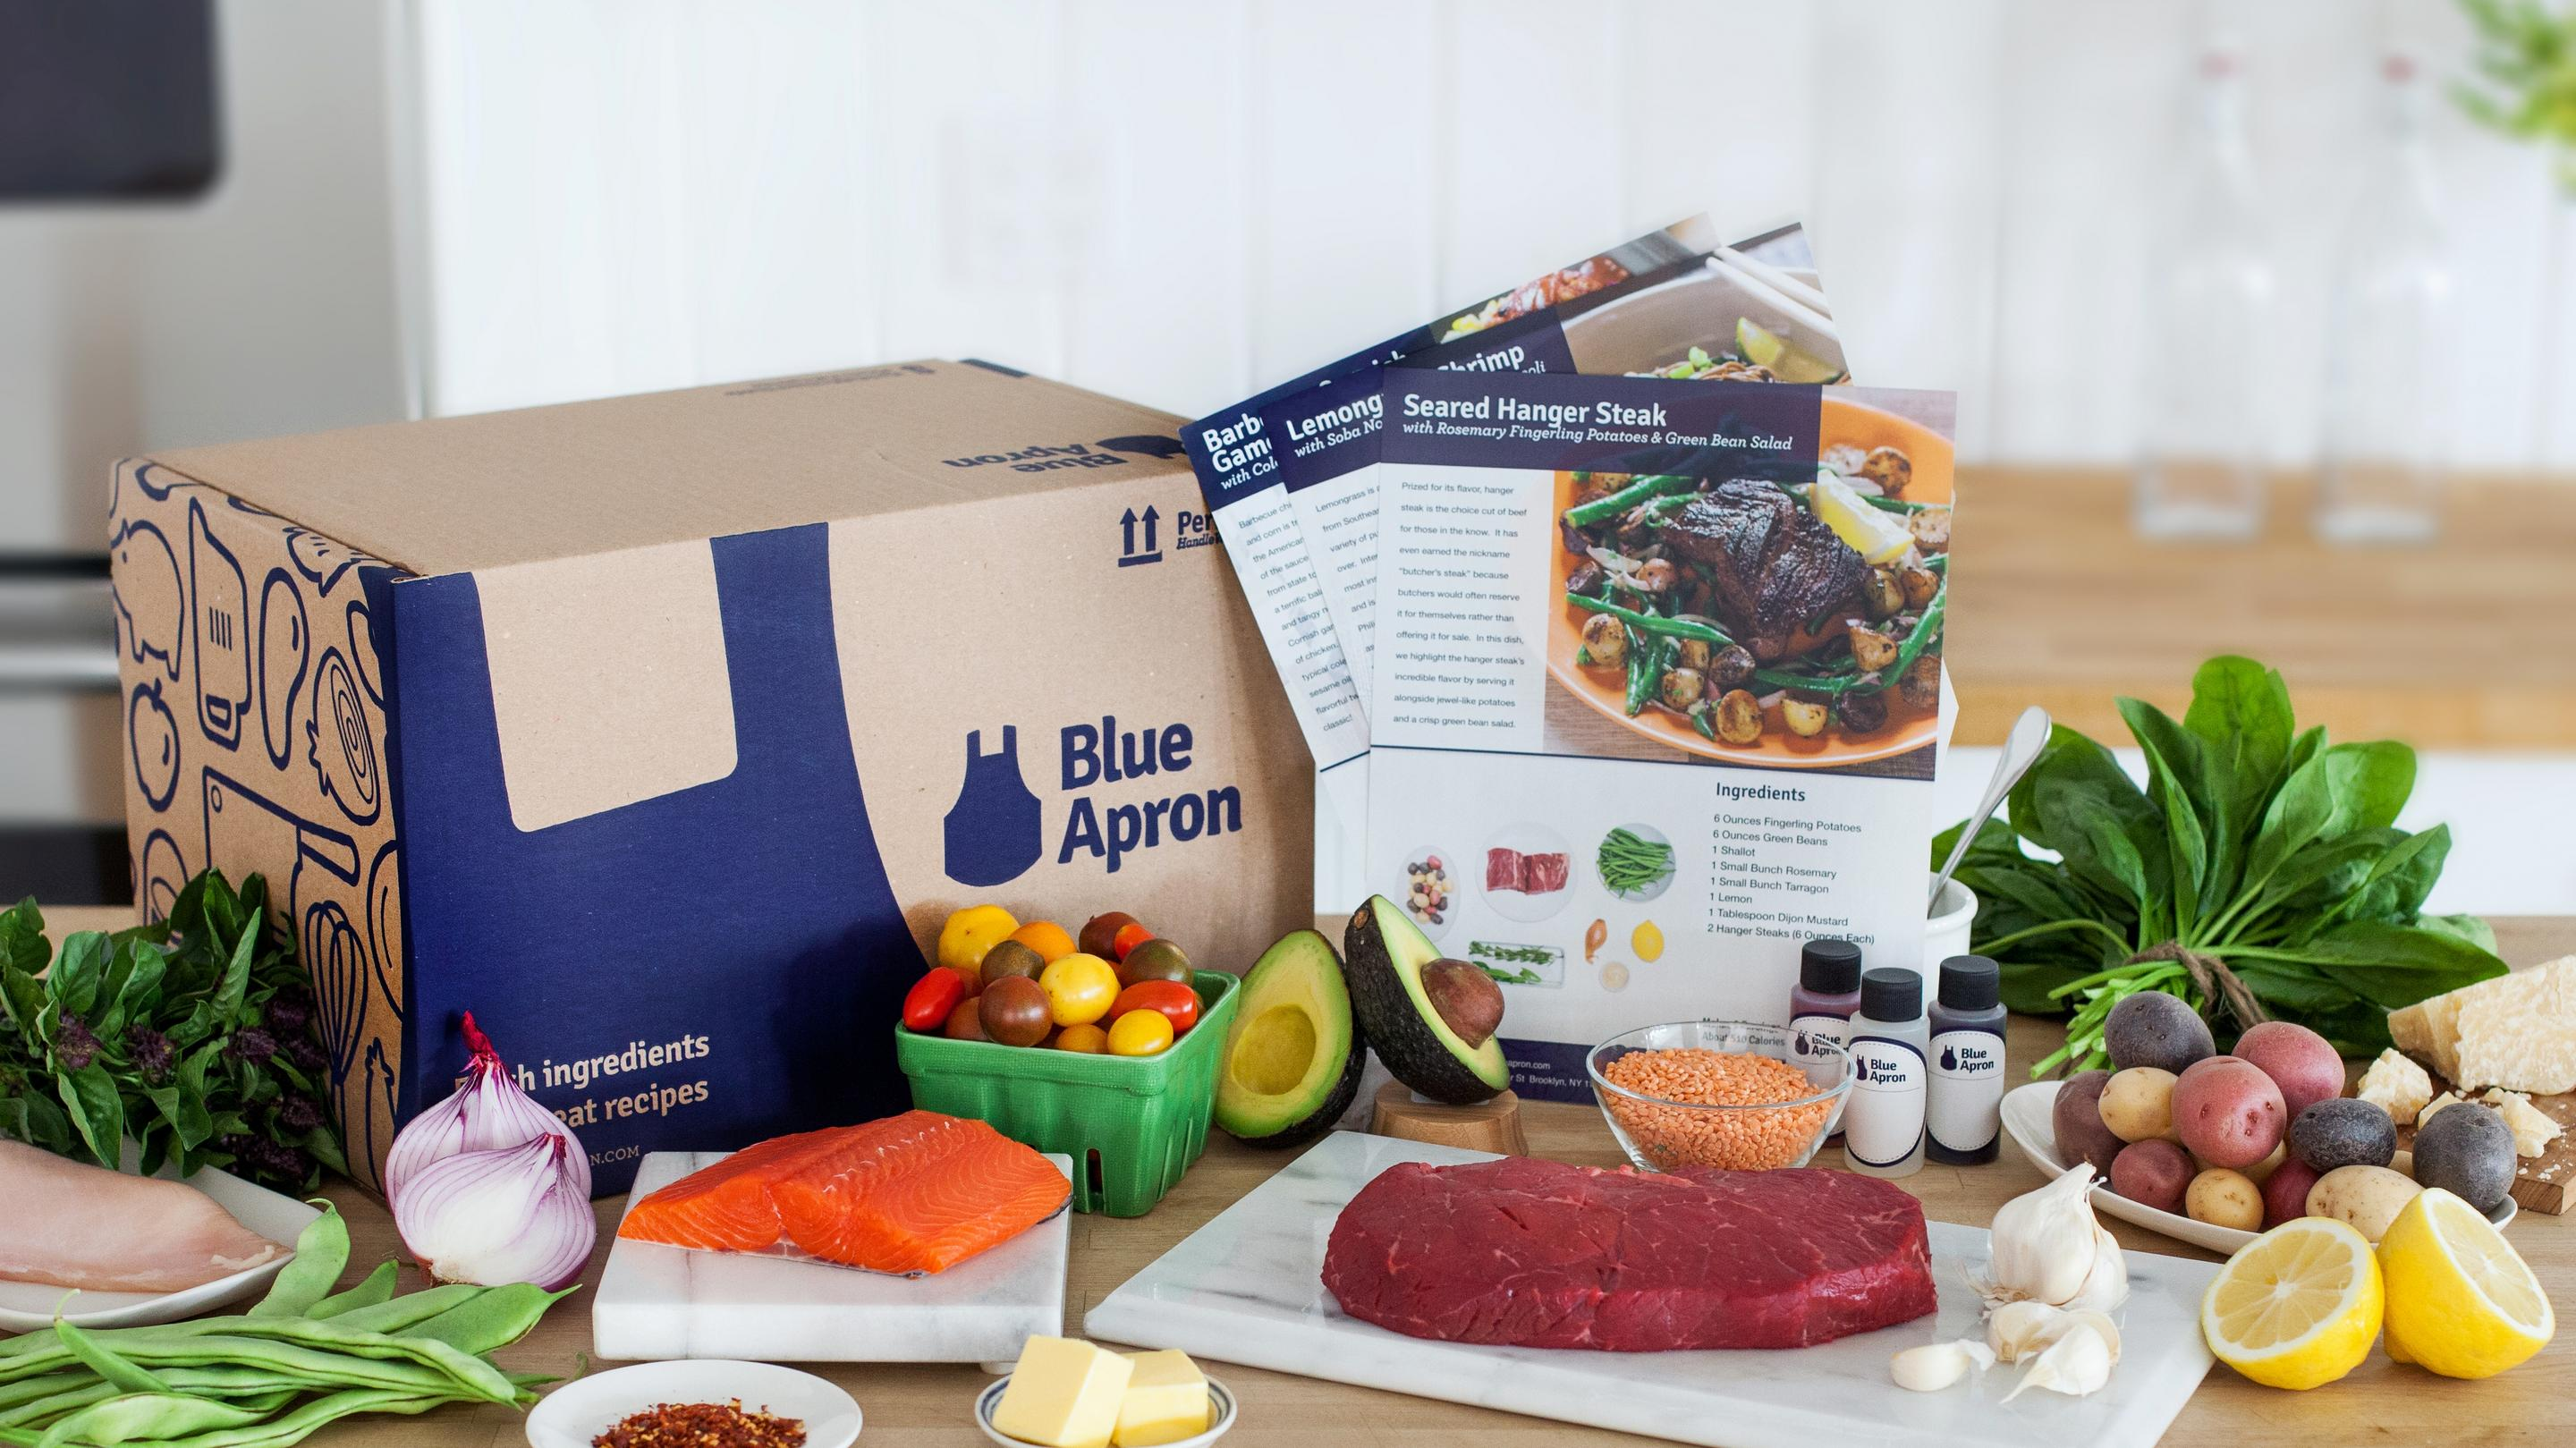 Blue Apron's hardships continue with layoffs